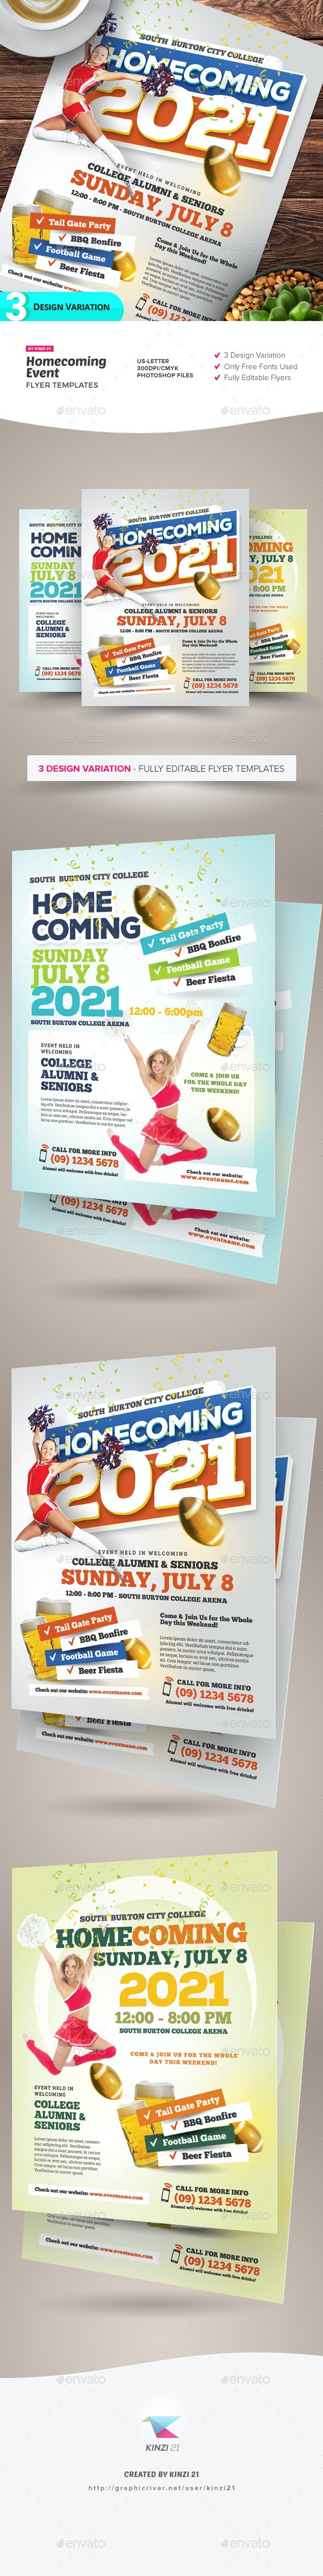 Homecoming Event Flyer Templates - Miscellaneous Events